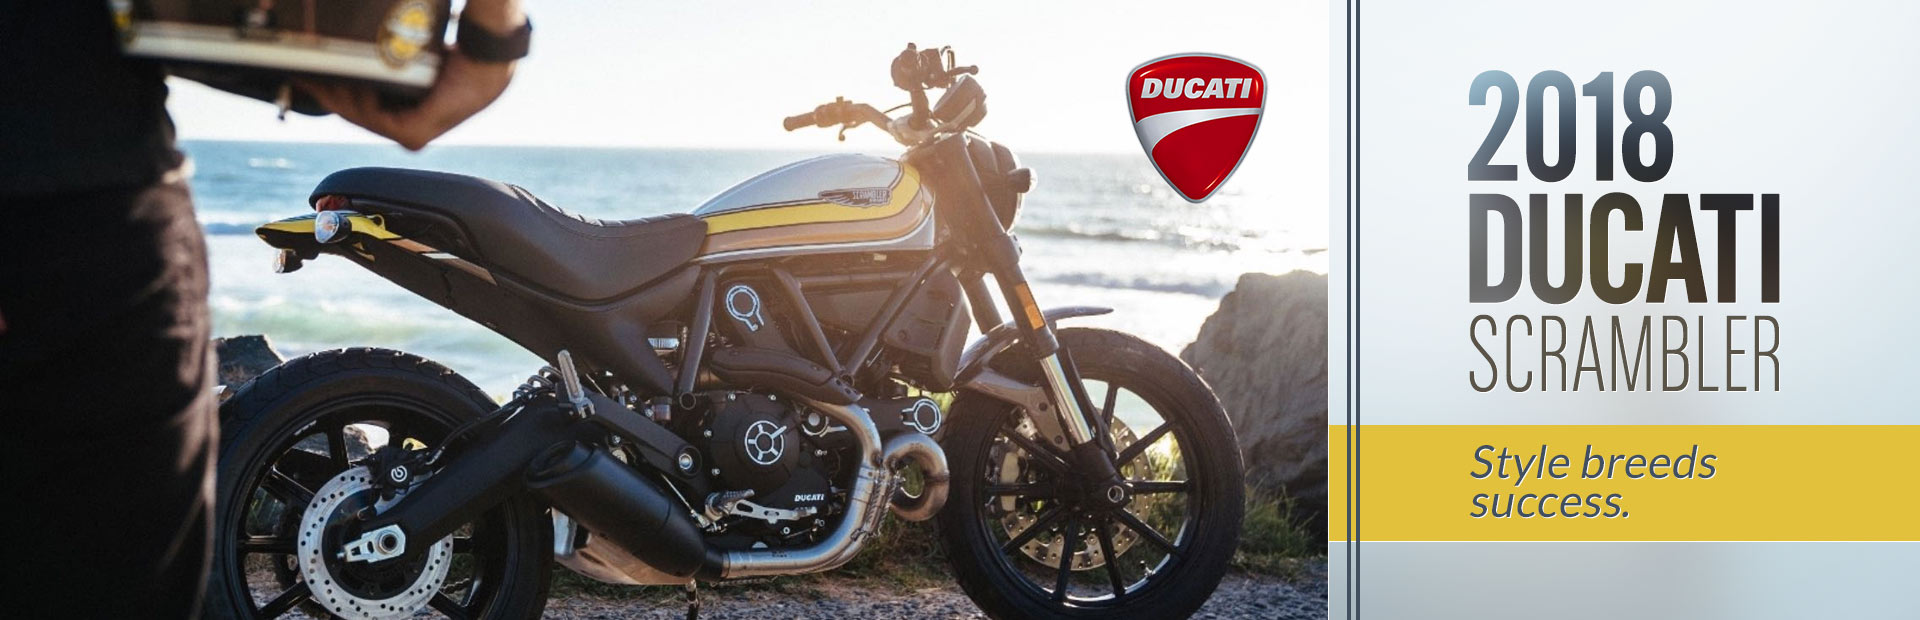 2018 Ducati Scrambler: Click here to view the models.